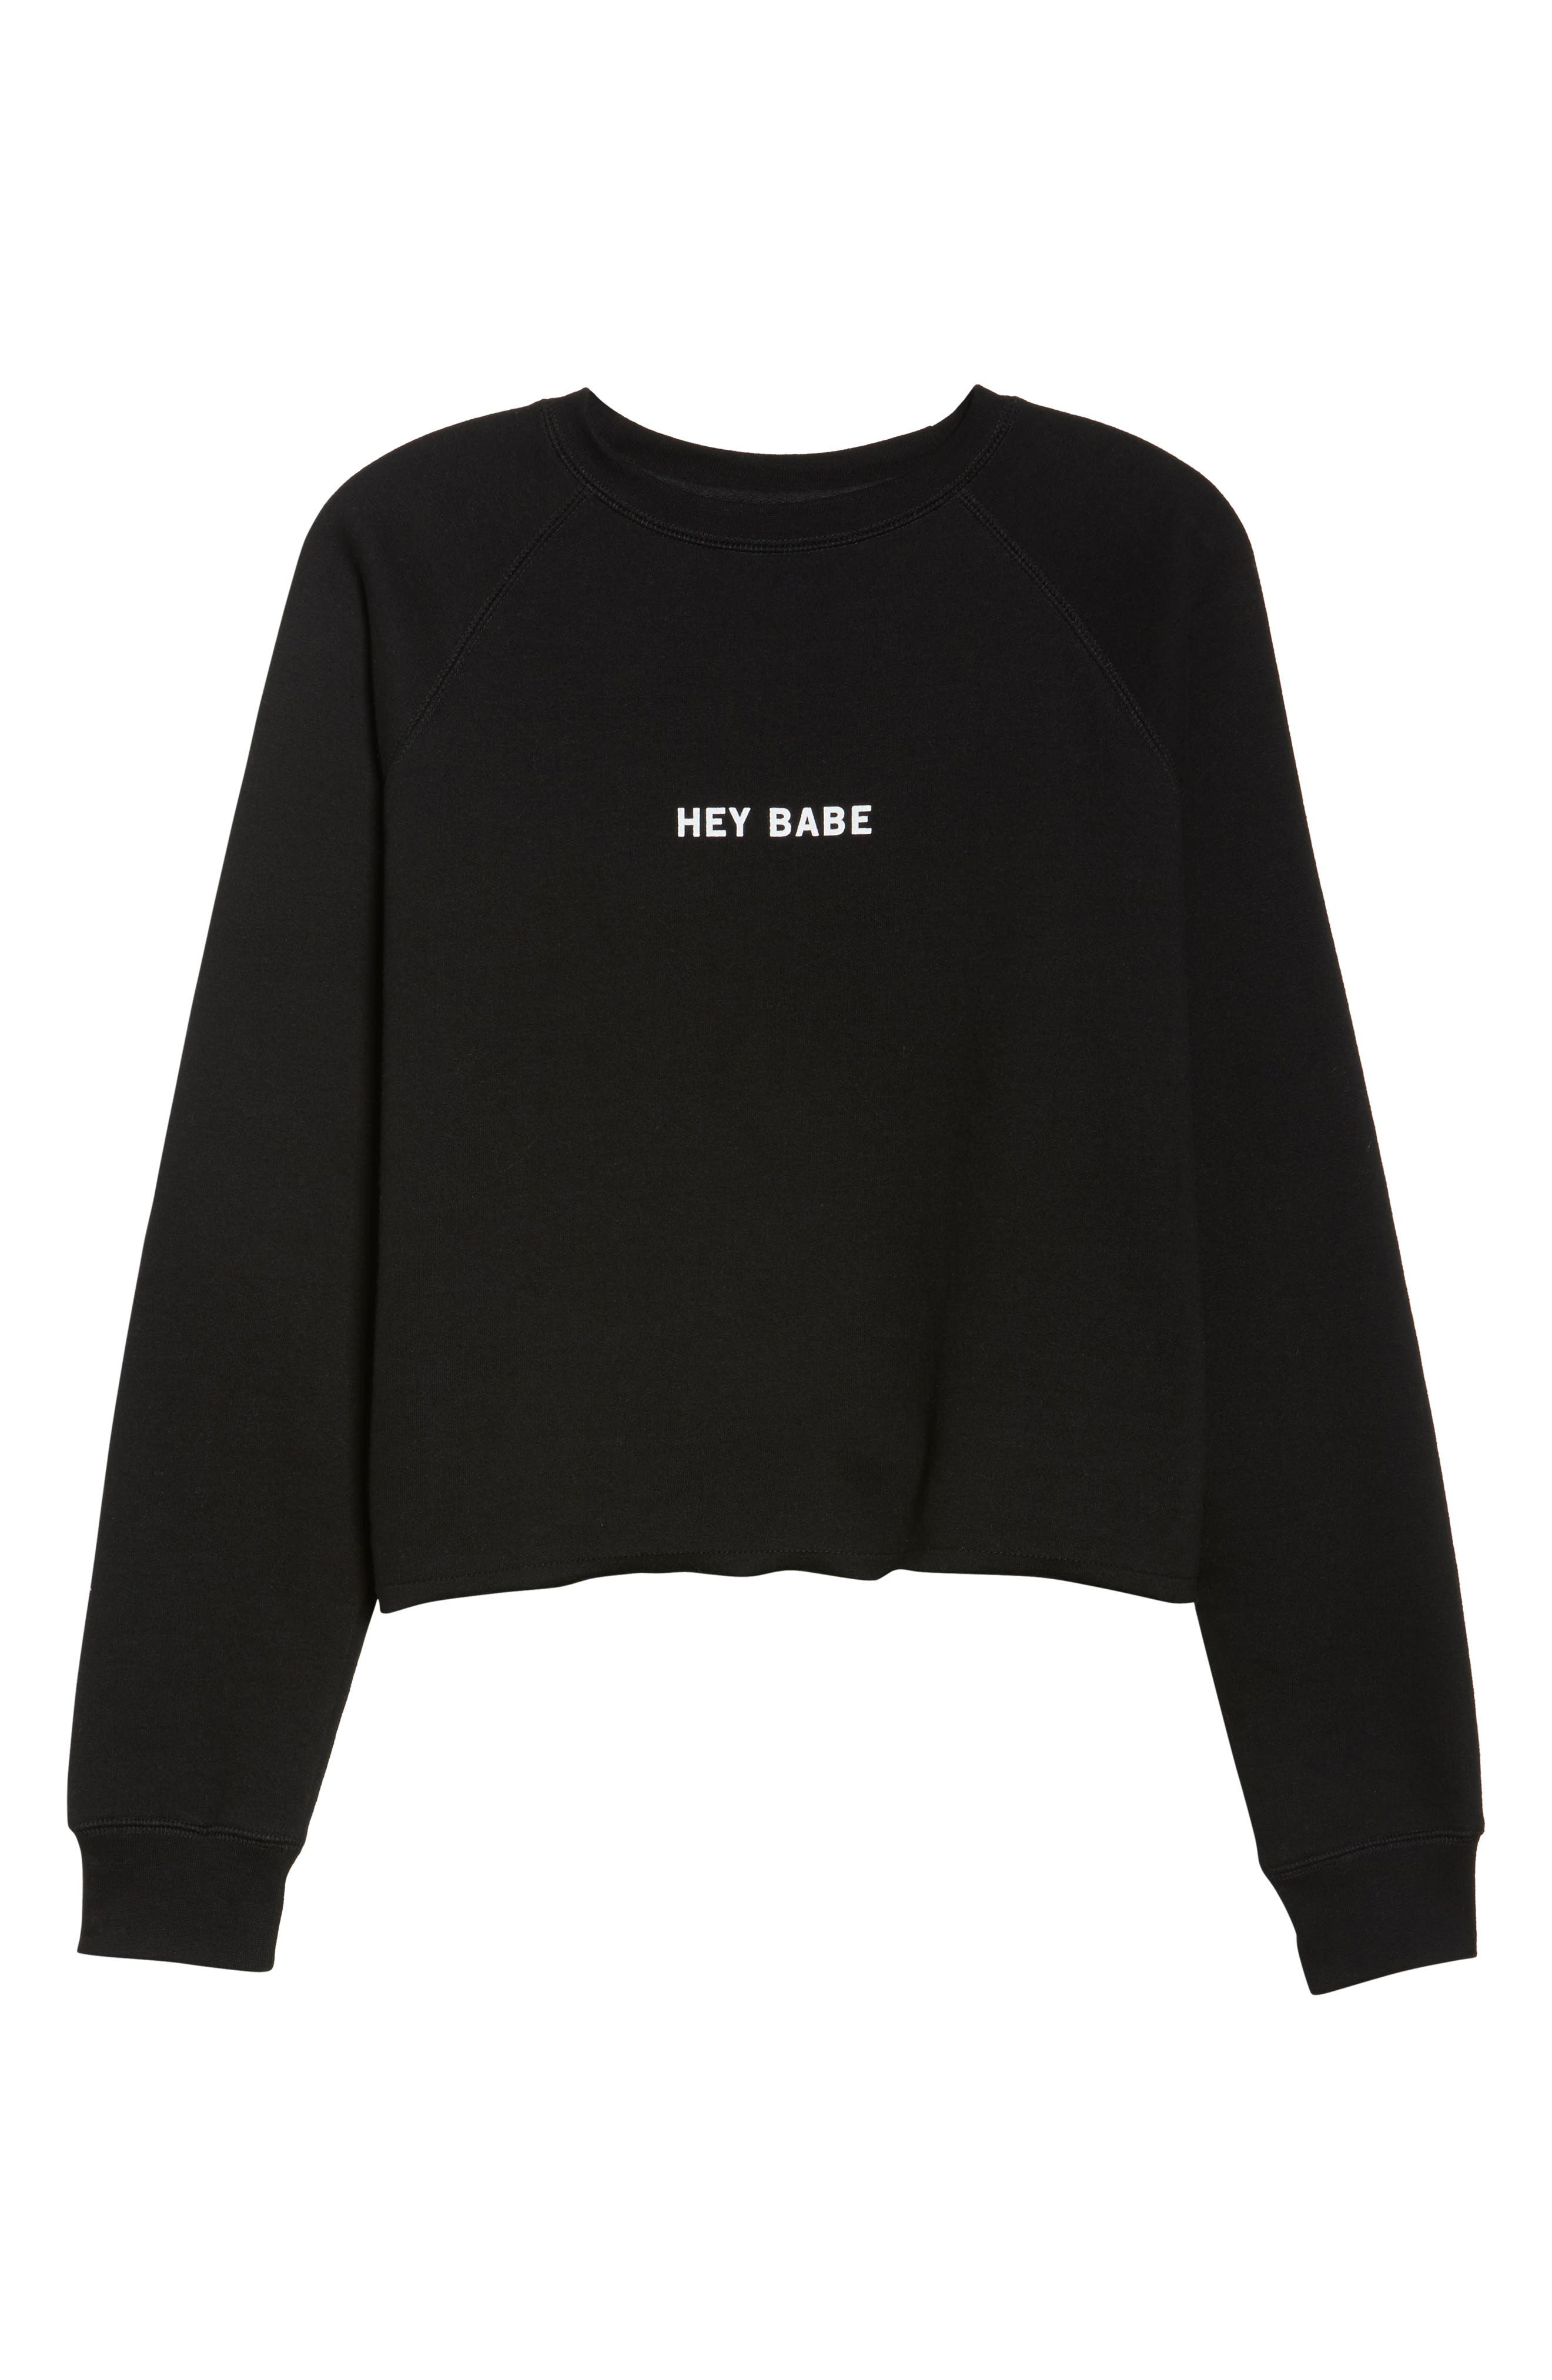 Hey Babe Sweatshirt,                             Alternate thumbnail 4, color,                             Black